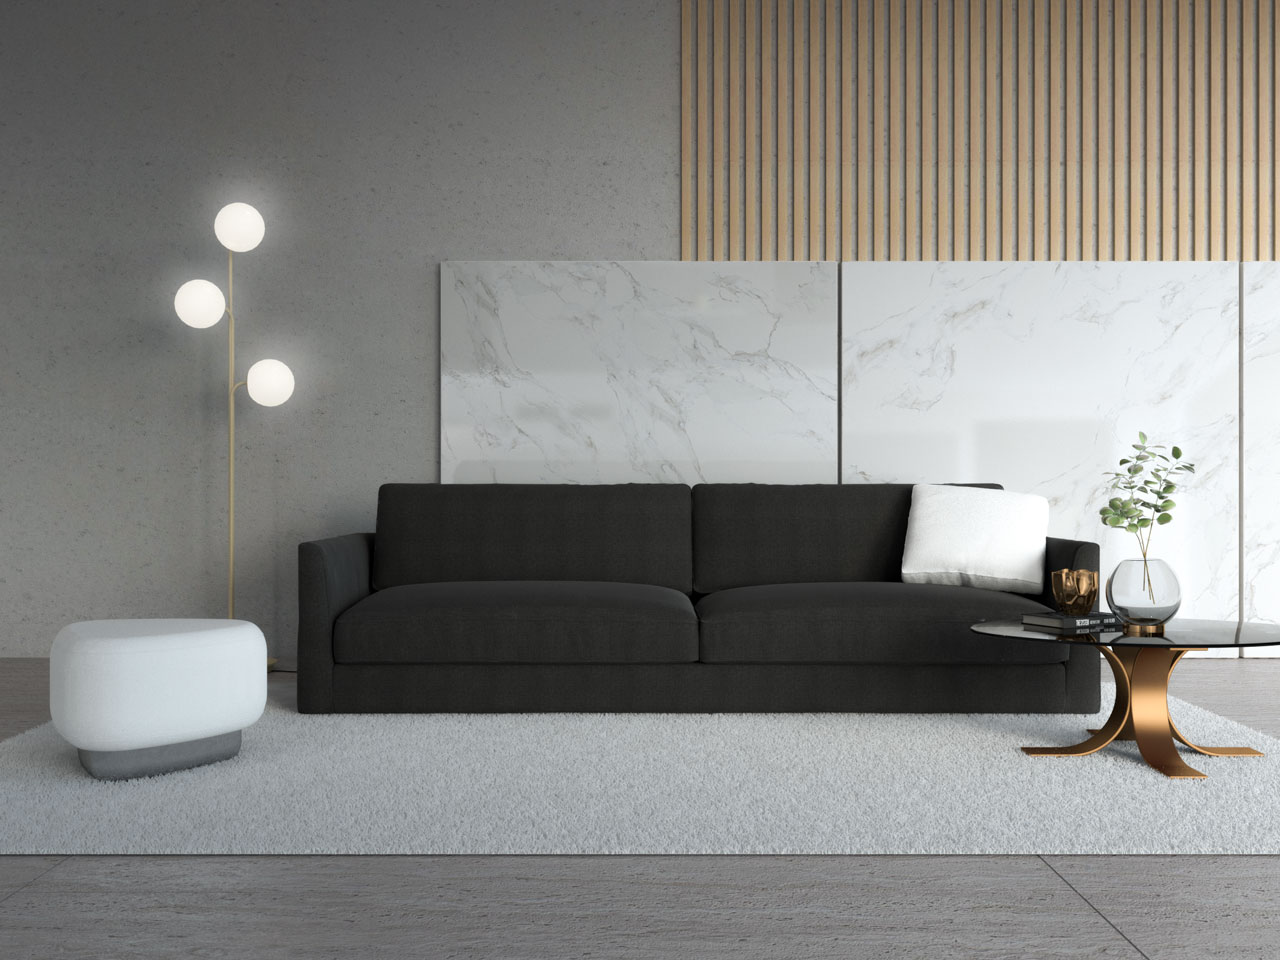 Black couch with white ottoman